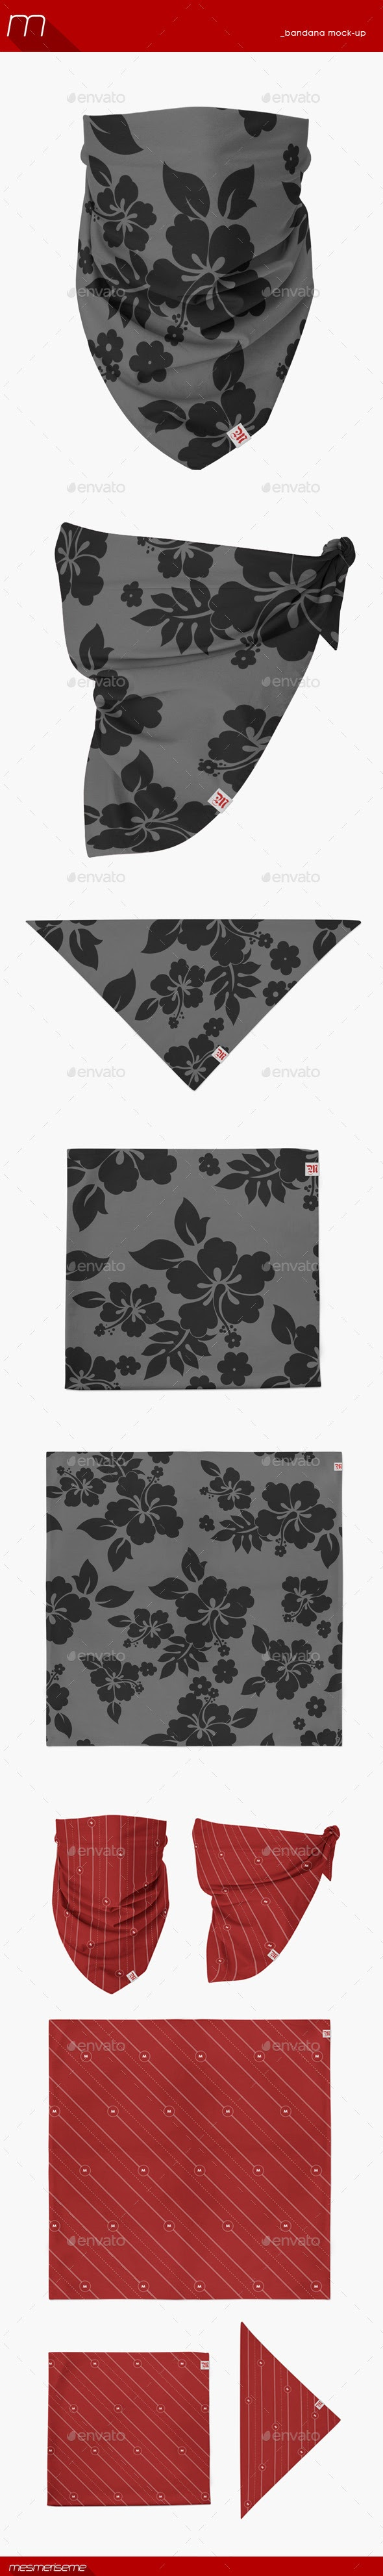 Download Free 2804+ Bandana Mockup Free Download Yellowimages Mockups free packaging mockups from the trusted websites.